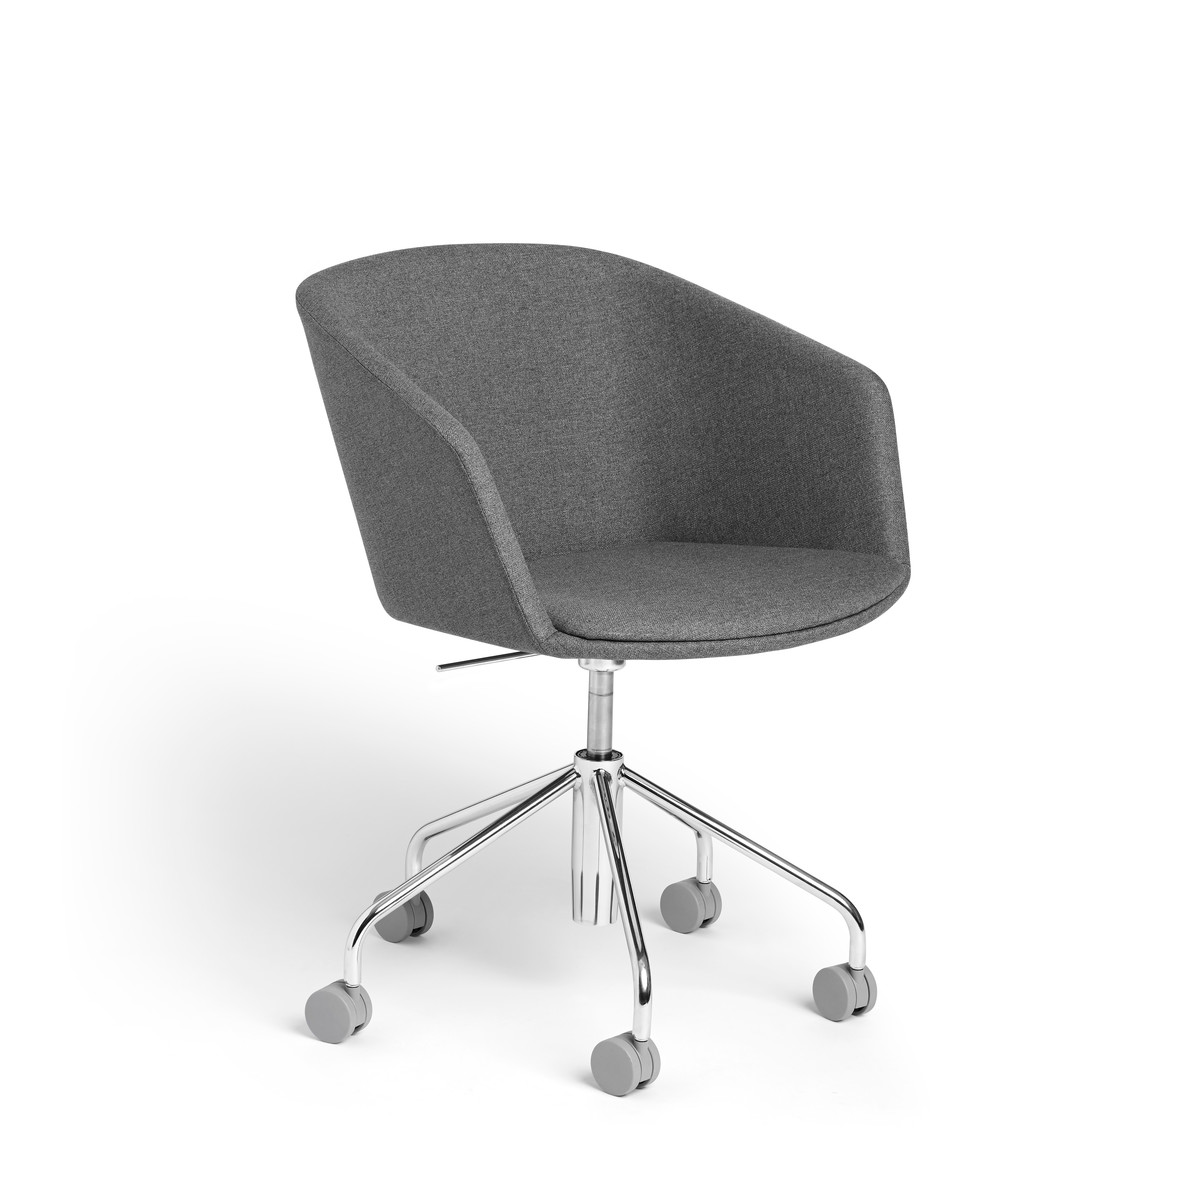 Dark Gray Pitch Meeting Chair,Dark Gray,hi Res. Loading Zoom